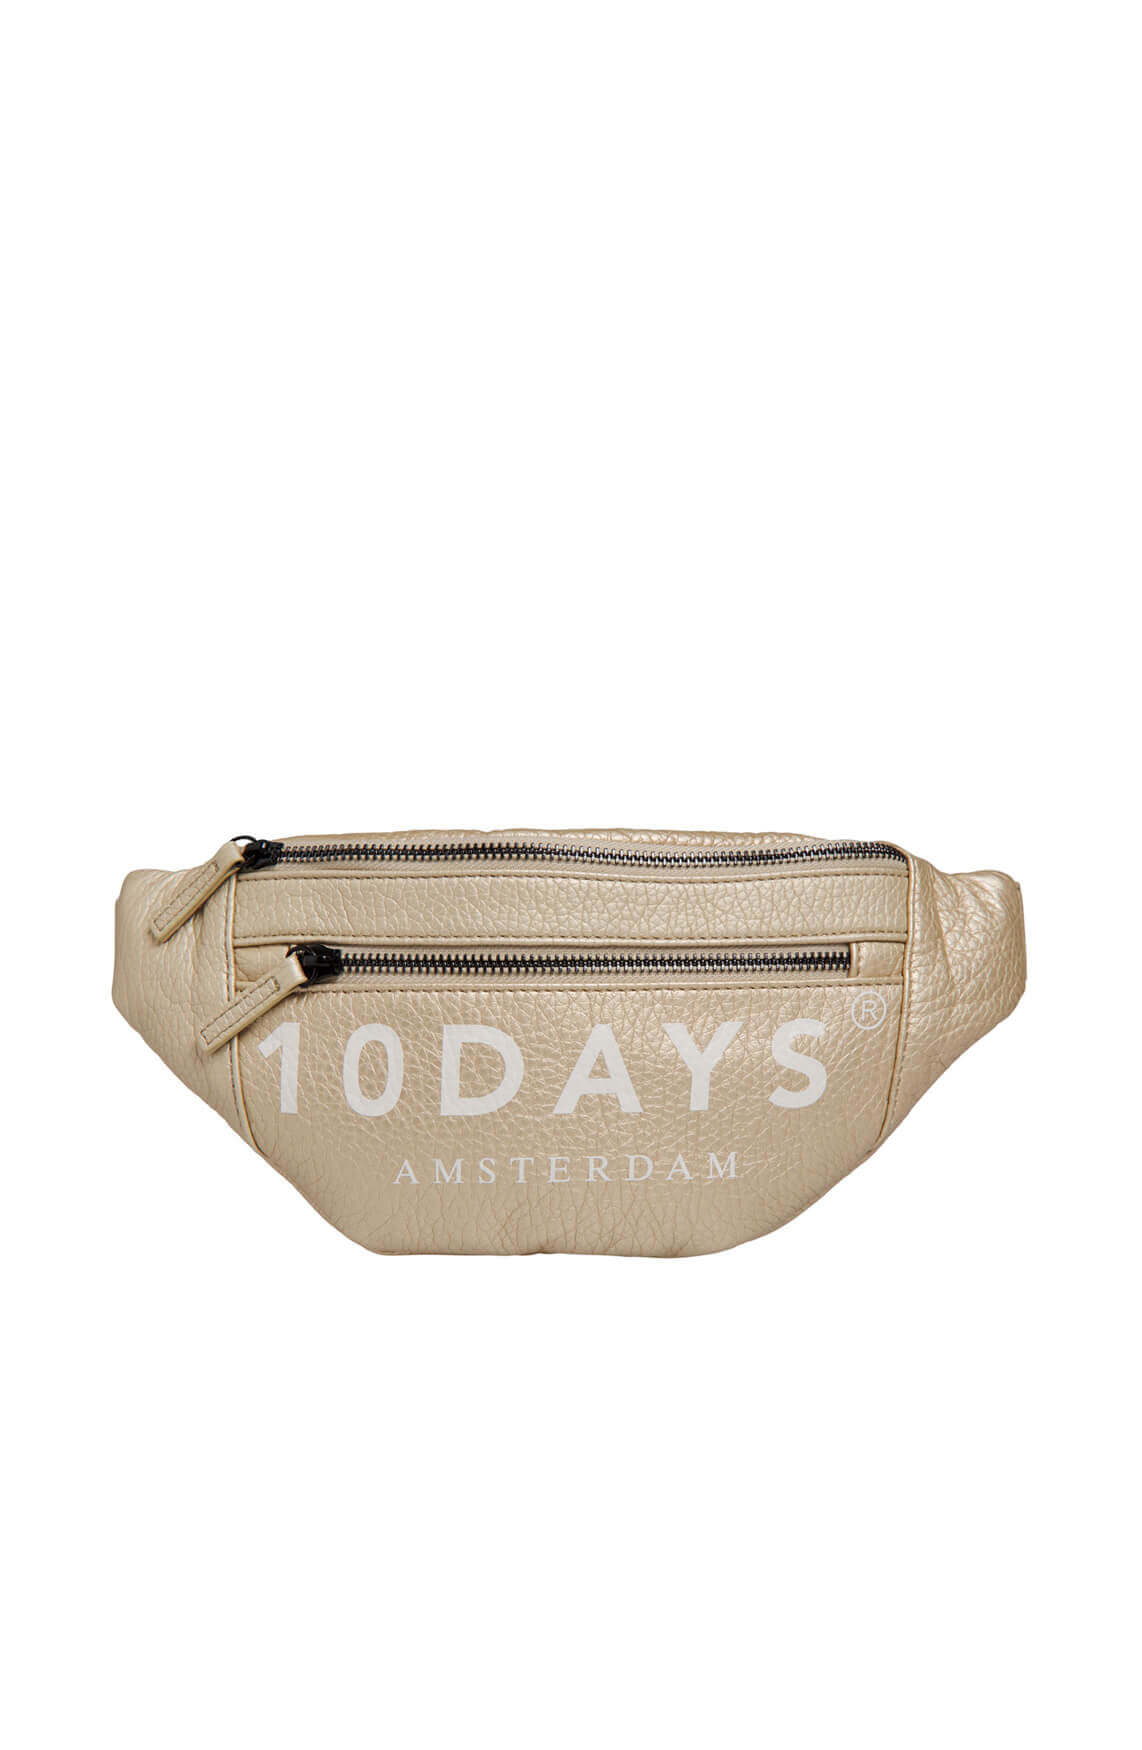 10 Days Dames Fanny pack goud